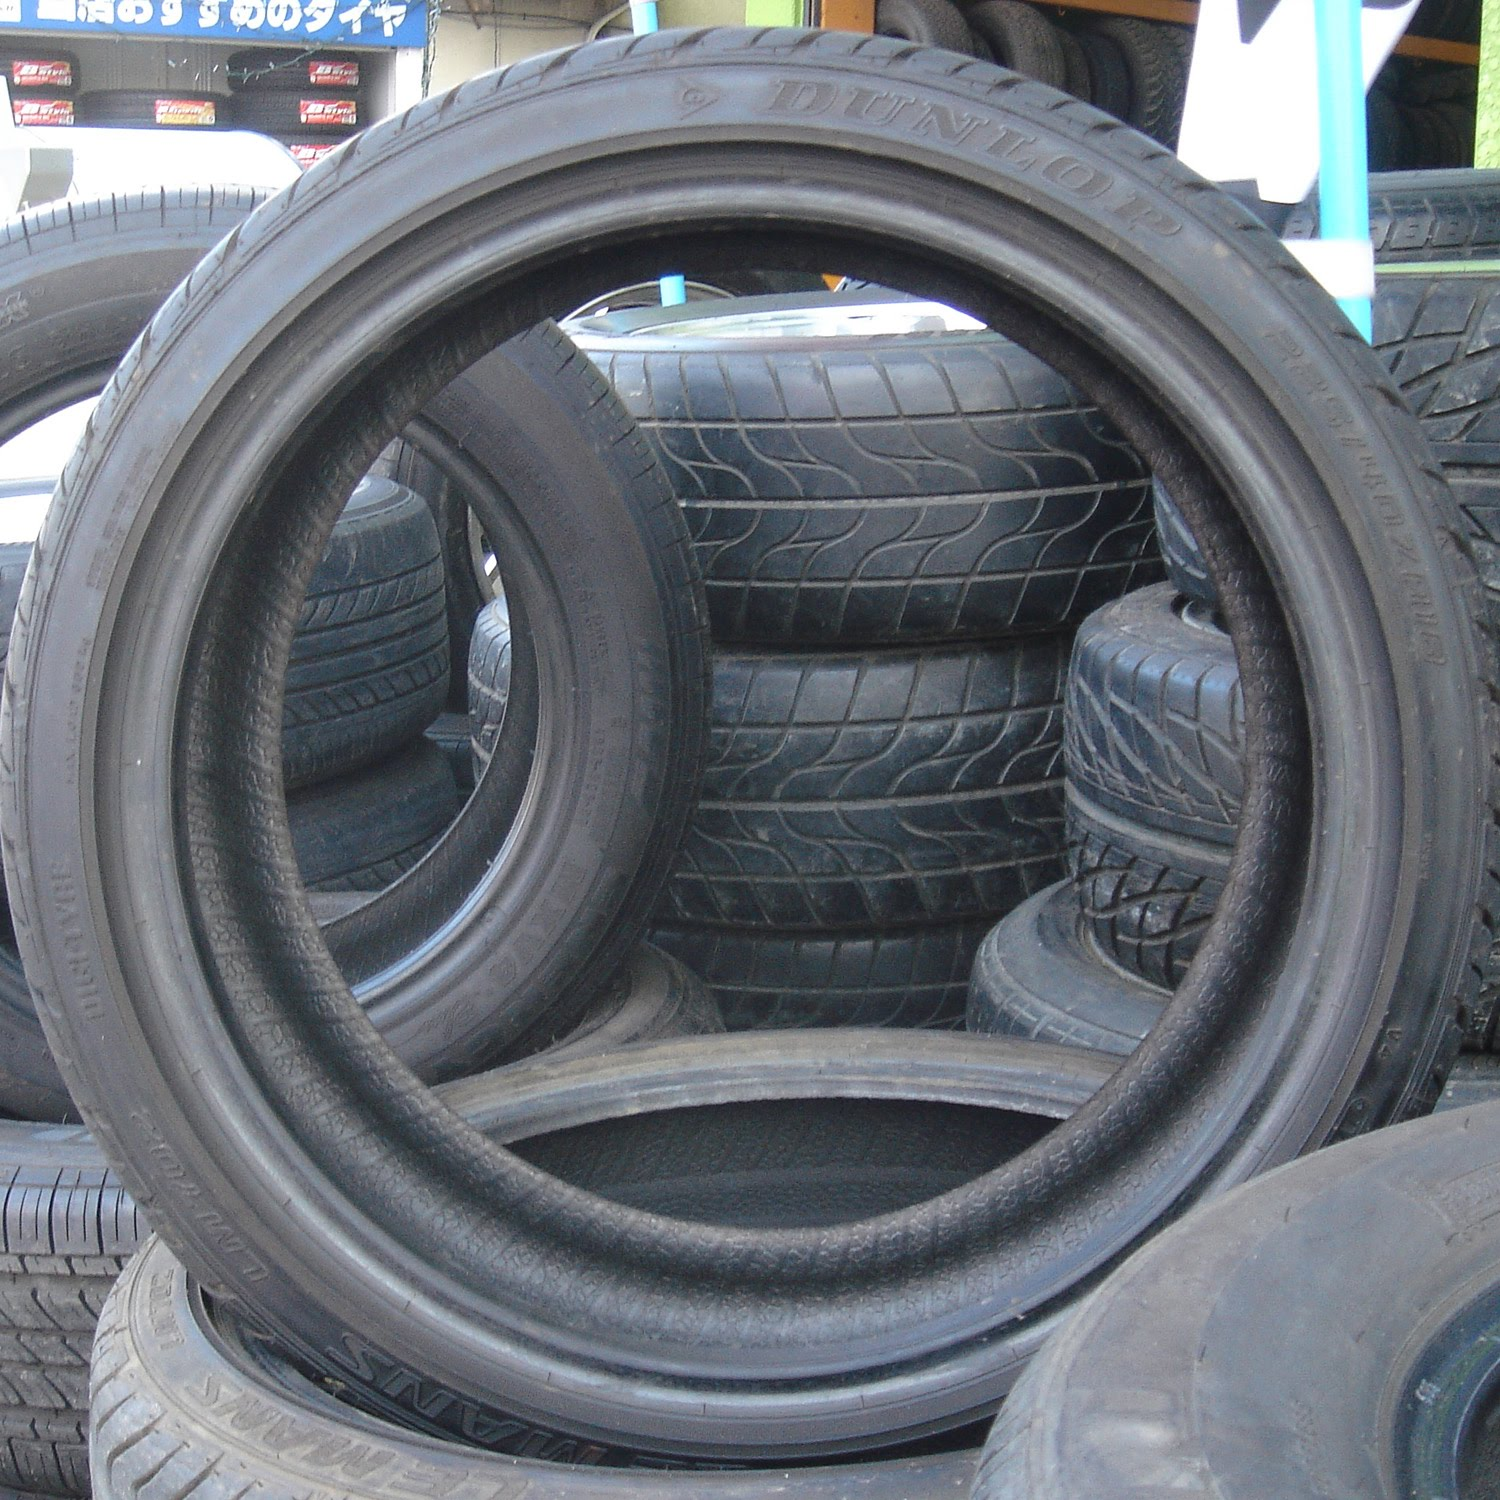 Benefits of Recycling Used Tires